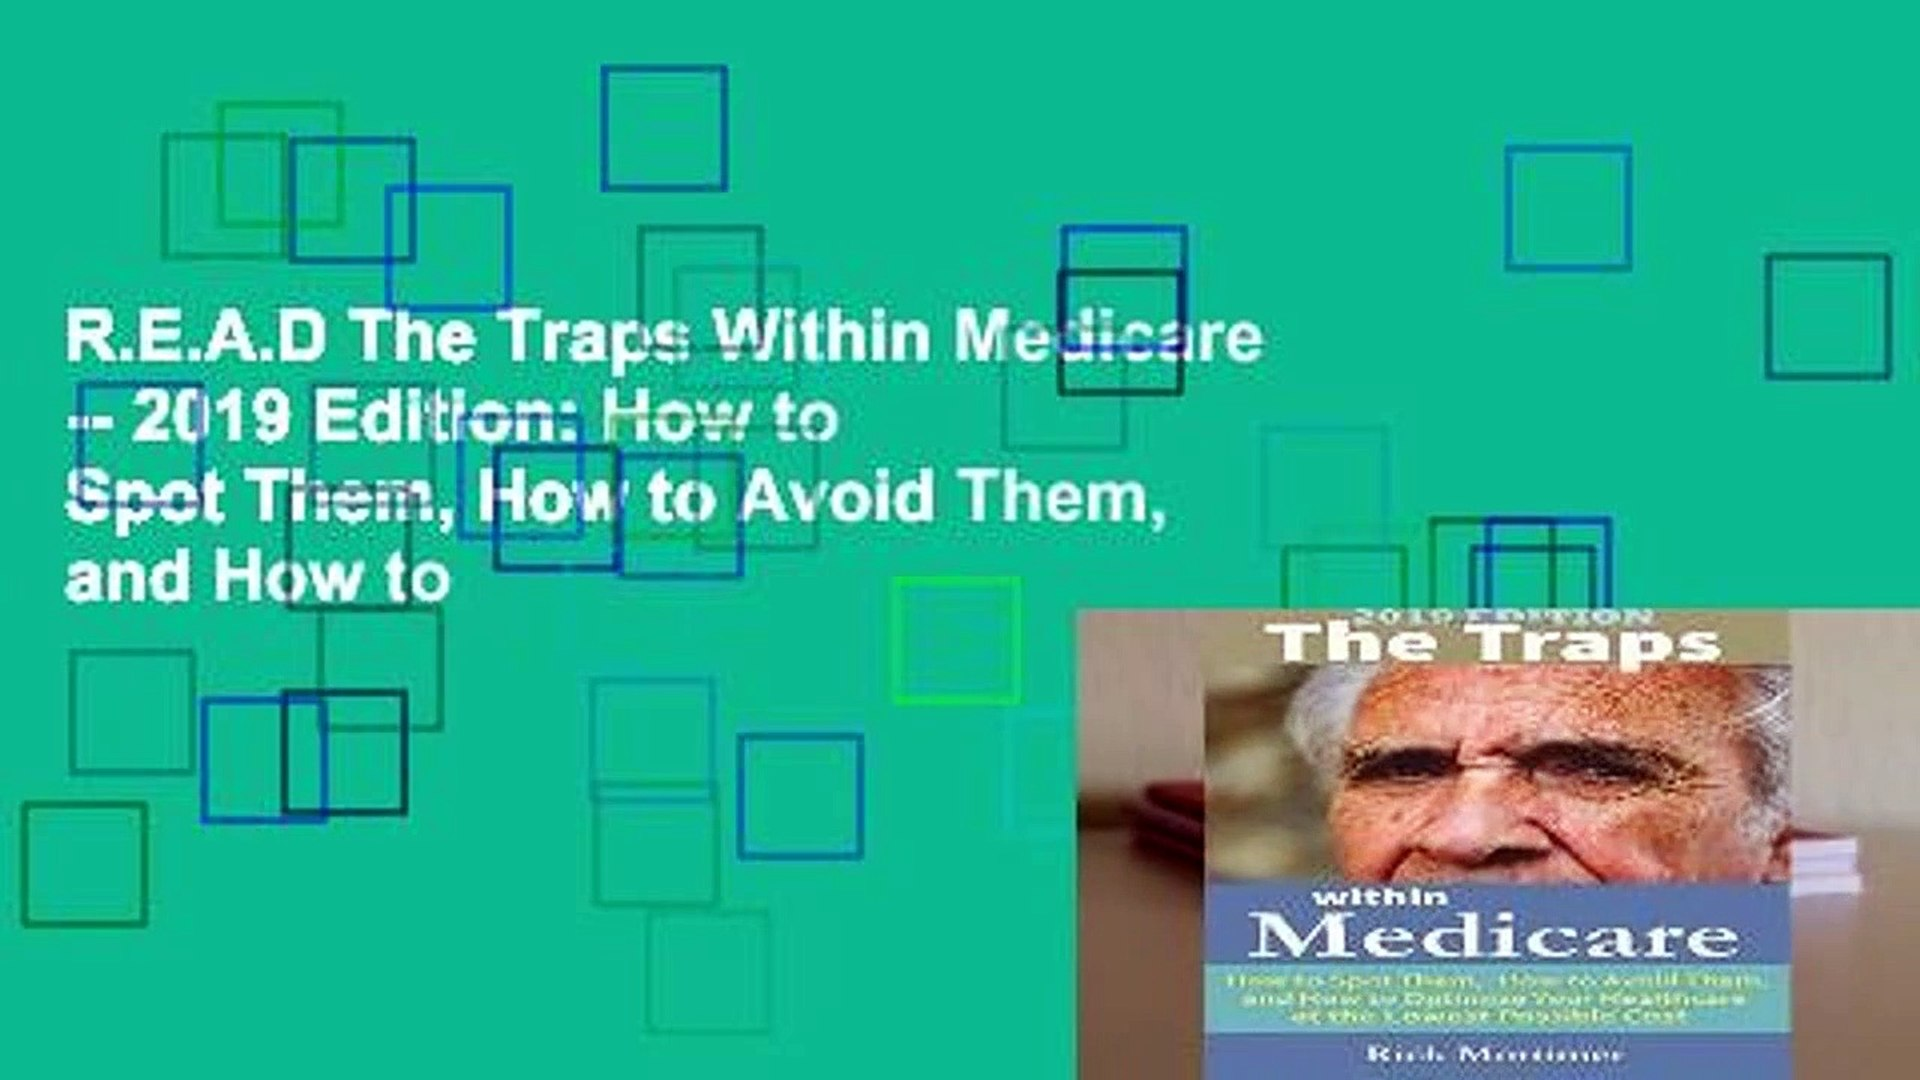 R.E.A.D The Traps Within Medicare -- 2019 Edition: How to Spot Them, How to Avoid Them, and How to